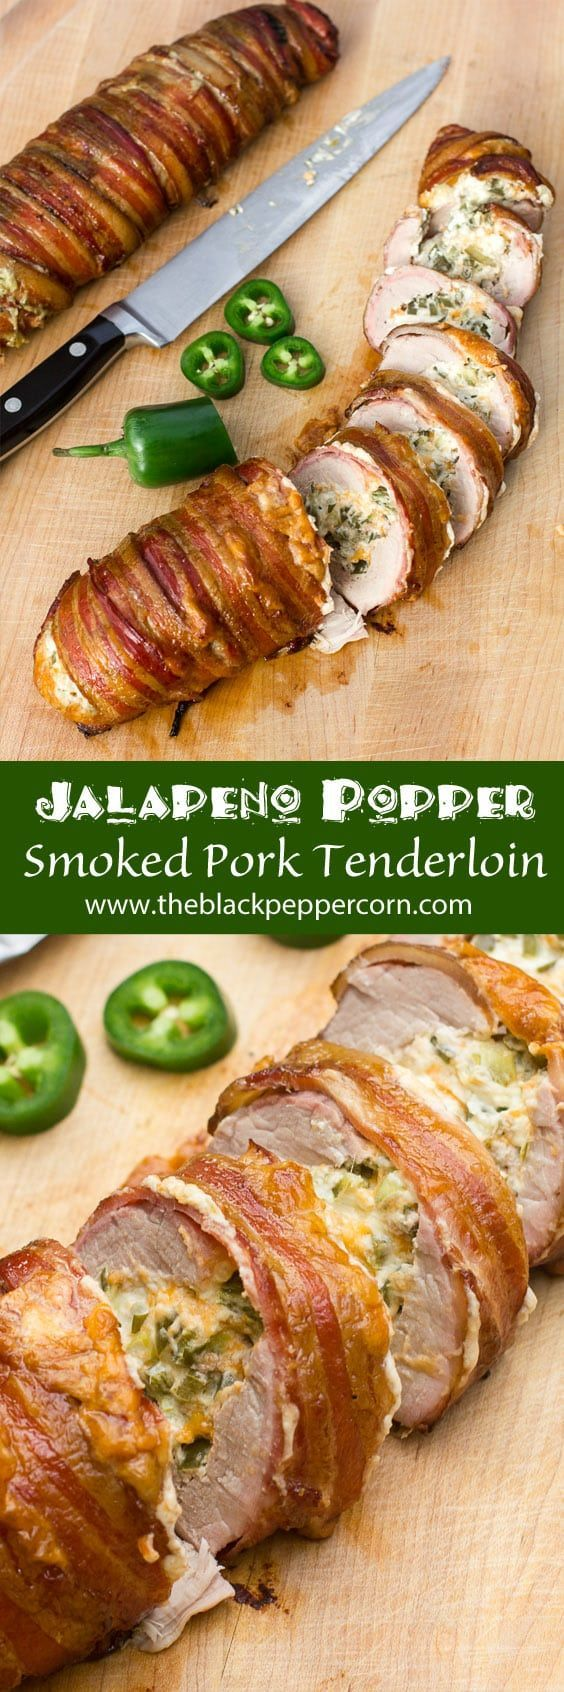 Jalapeño Popper Stuffed Smoked Pork Tenderloin Wrapped in Bacon